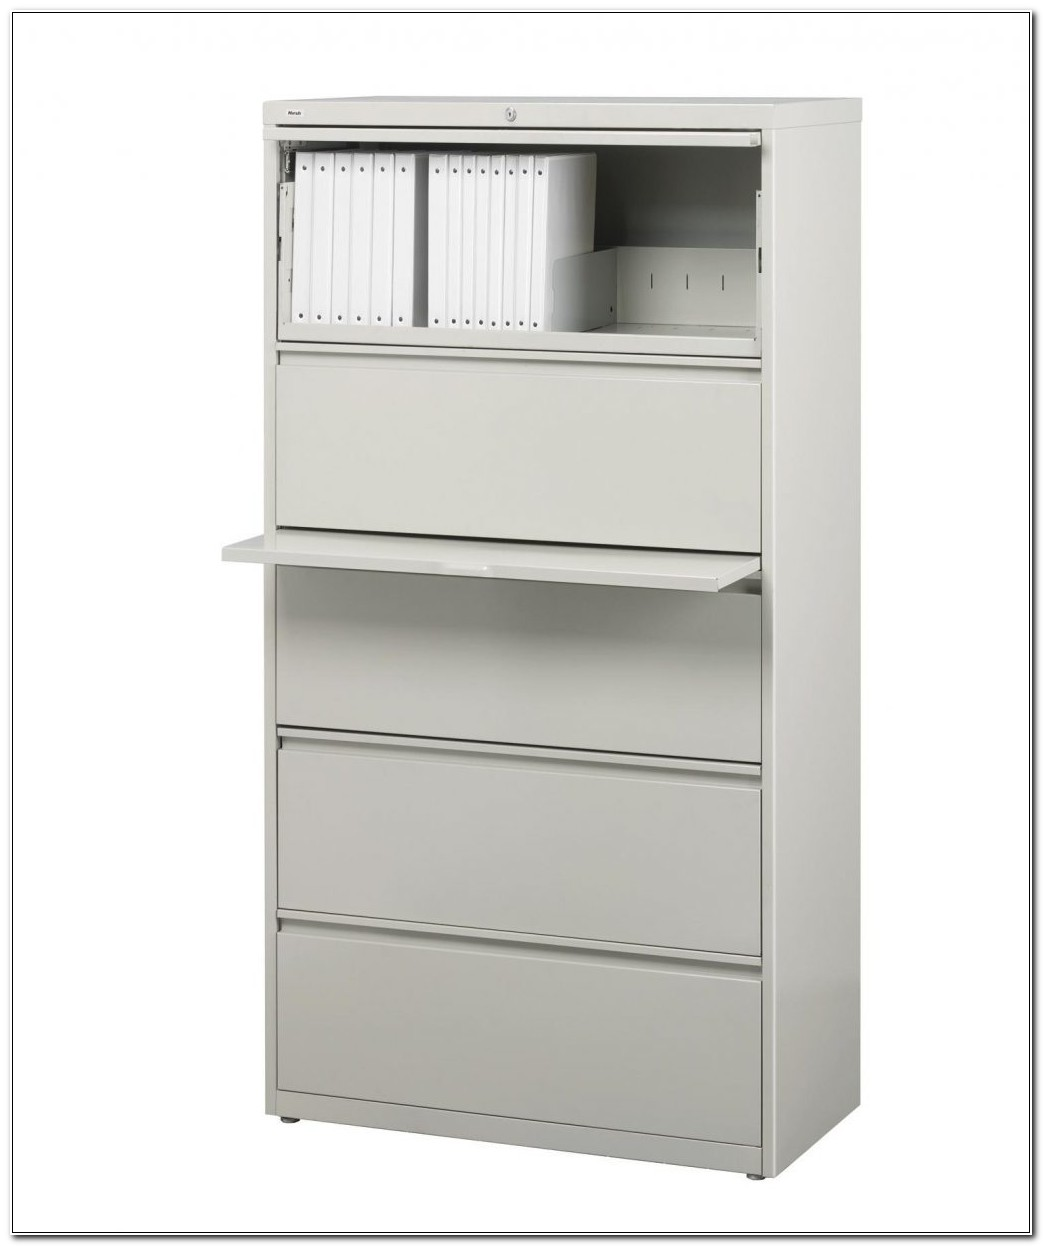 Hon 5 Drawer Lateral File Cabinet Weight